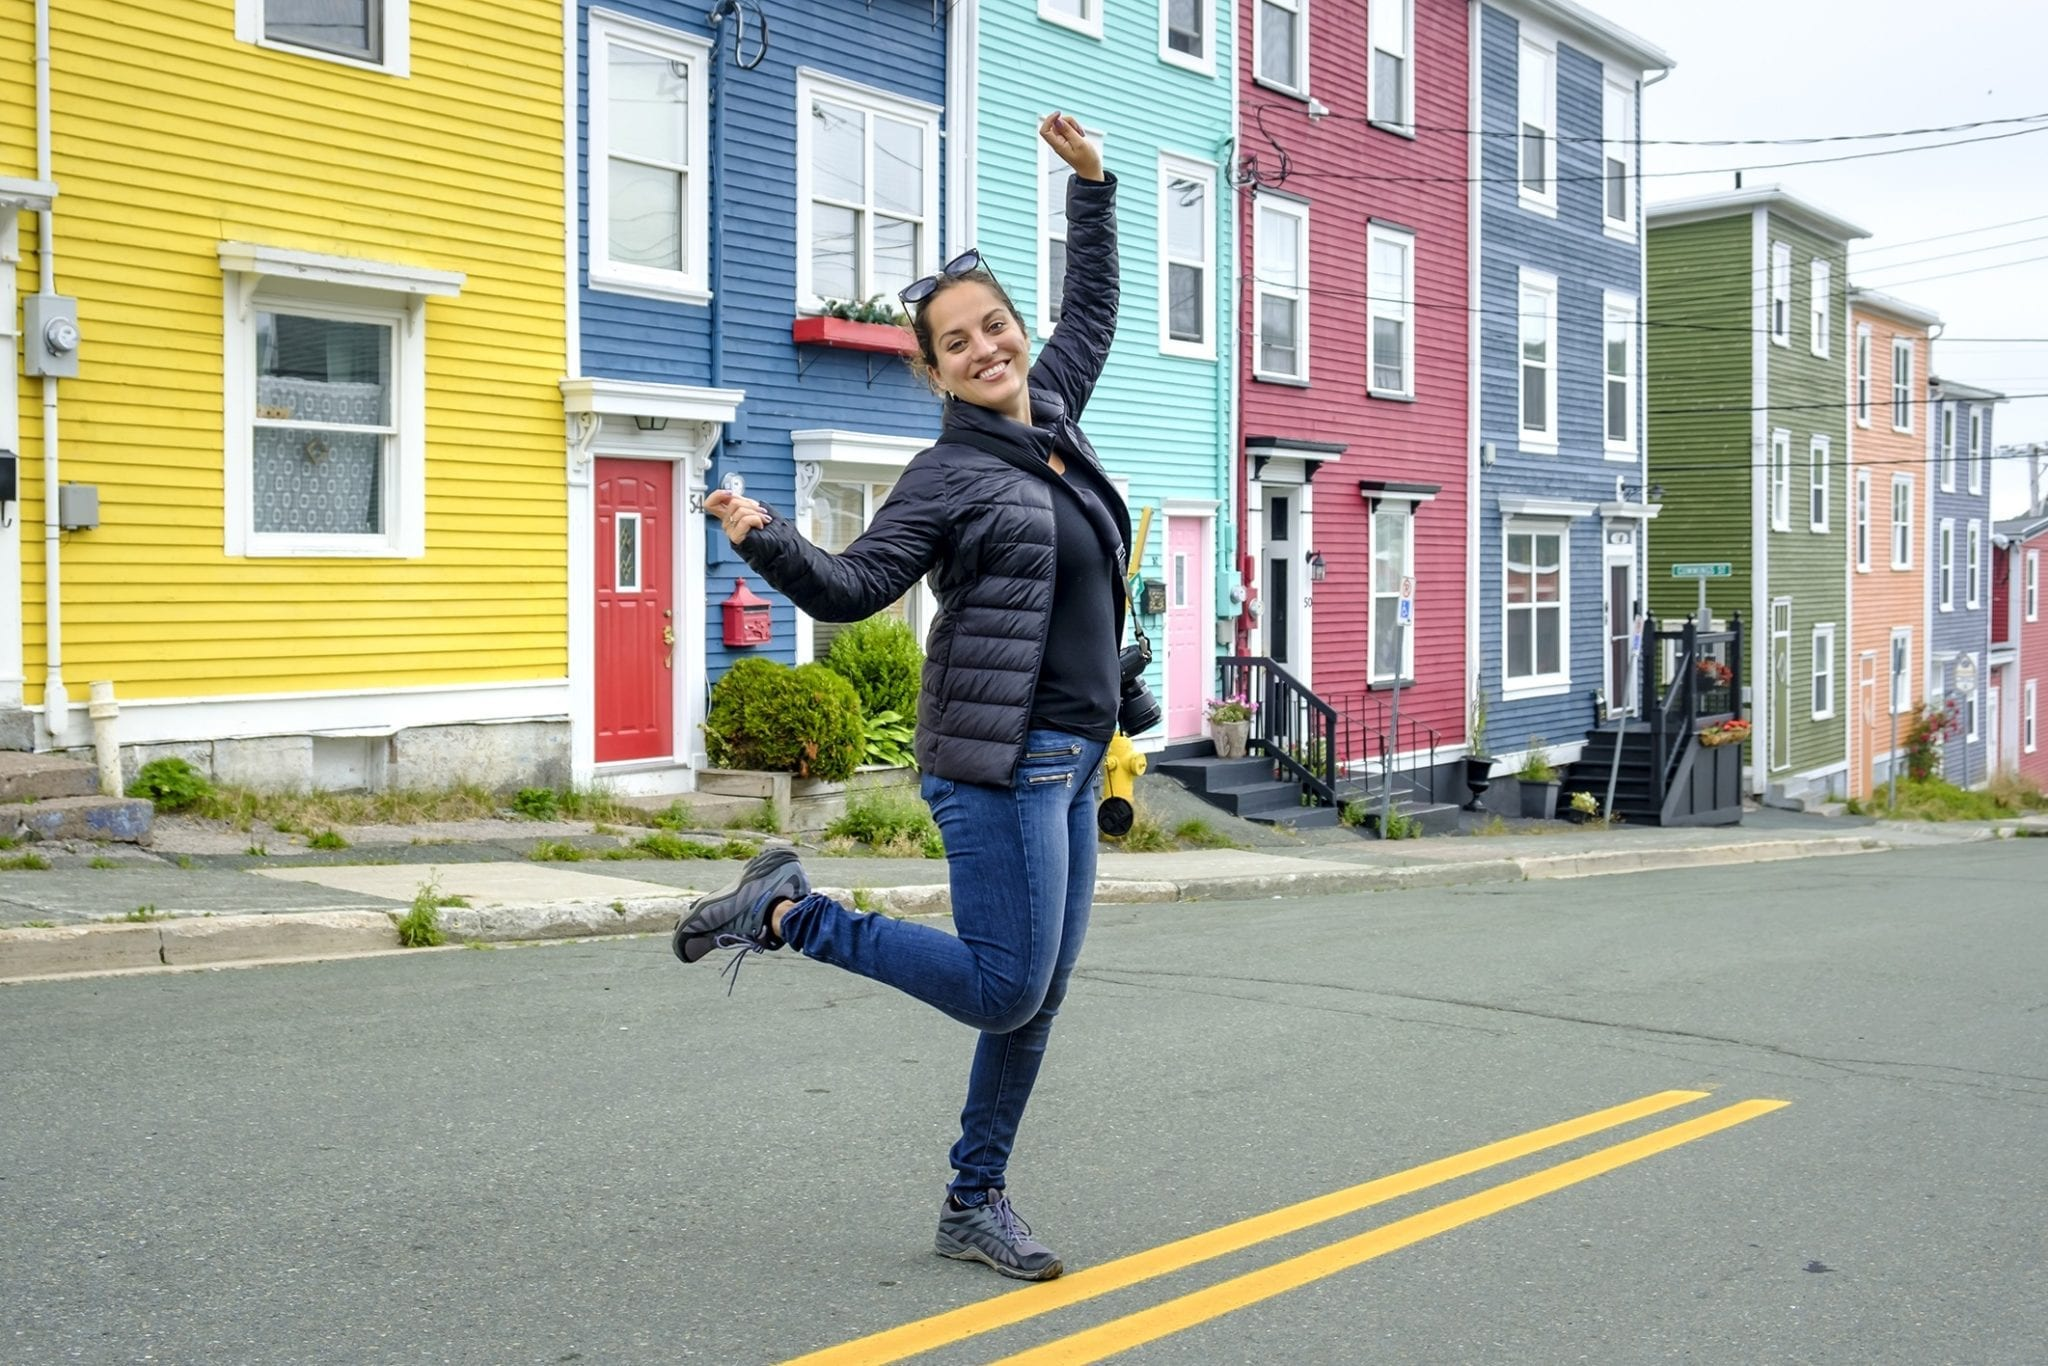 Kate dances in the street in front of a row of brightly painted houses in St. John's.